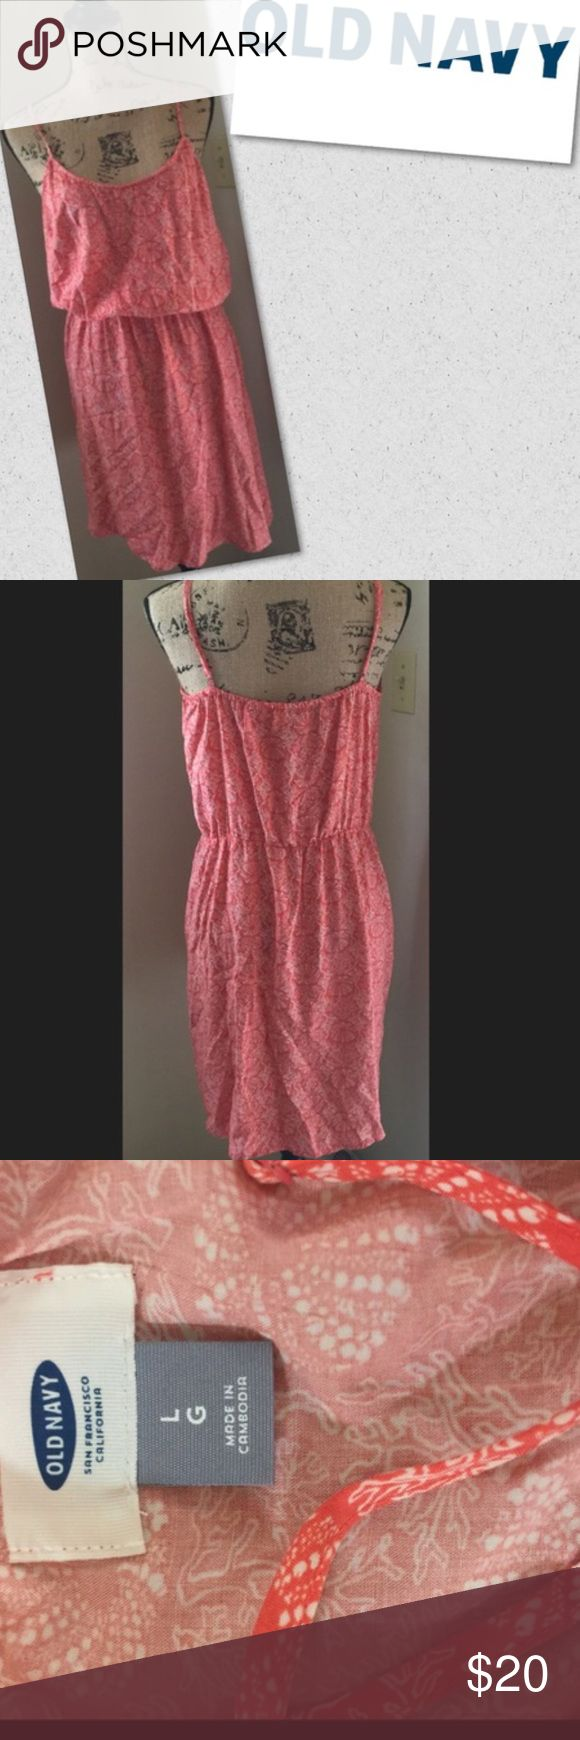 Old navy coral and sea life Old navy orange Cami dress size large coral and sea life print nautical theme Dresses